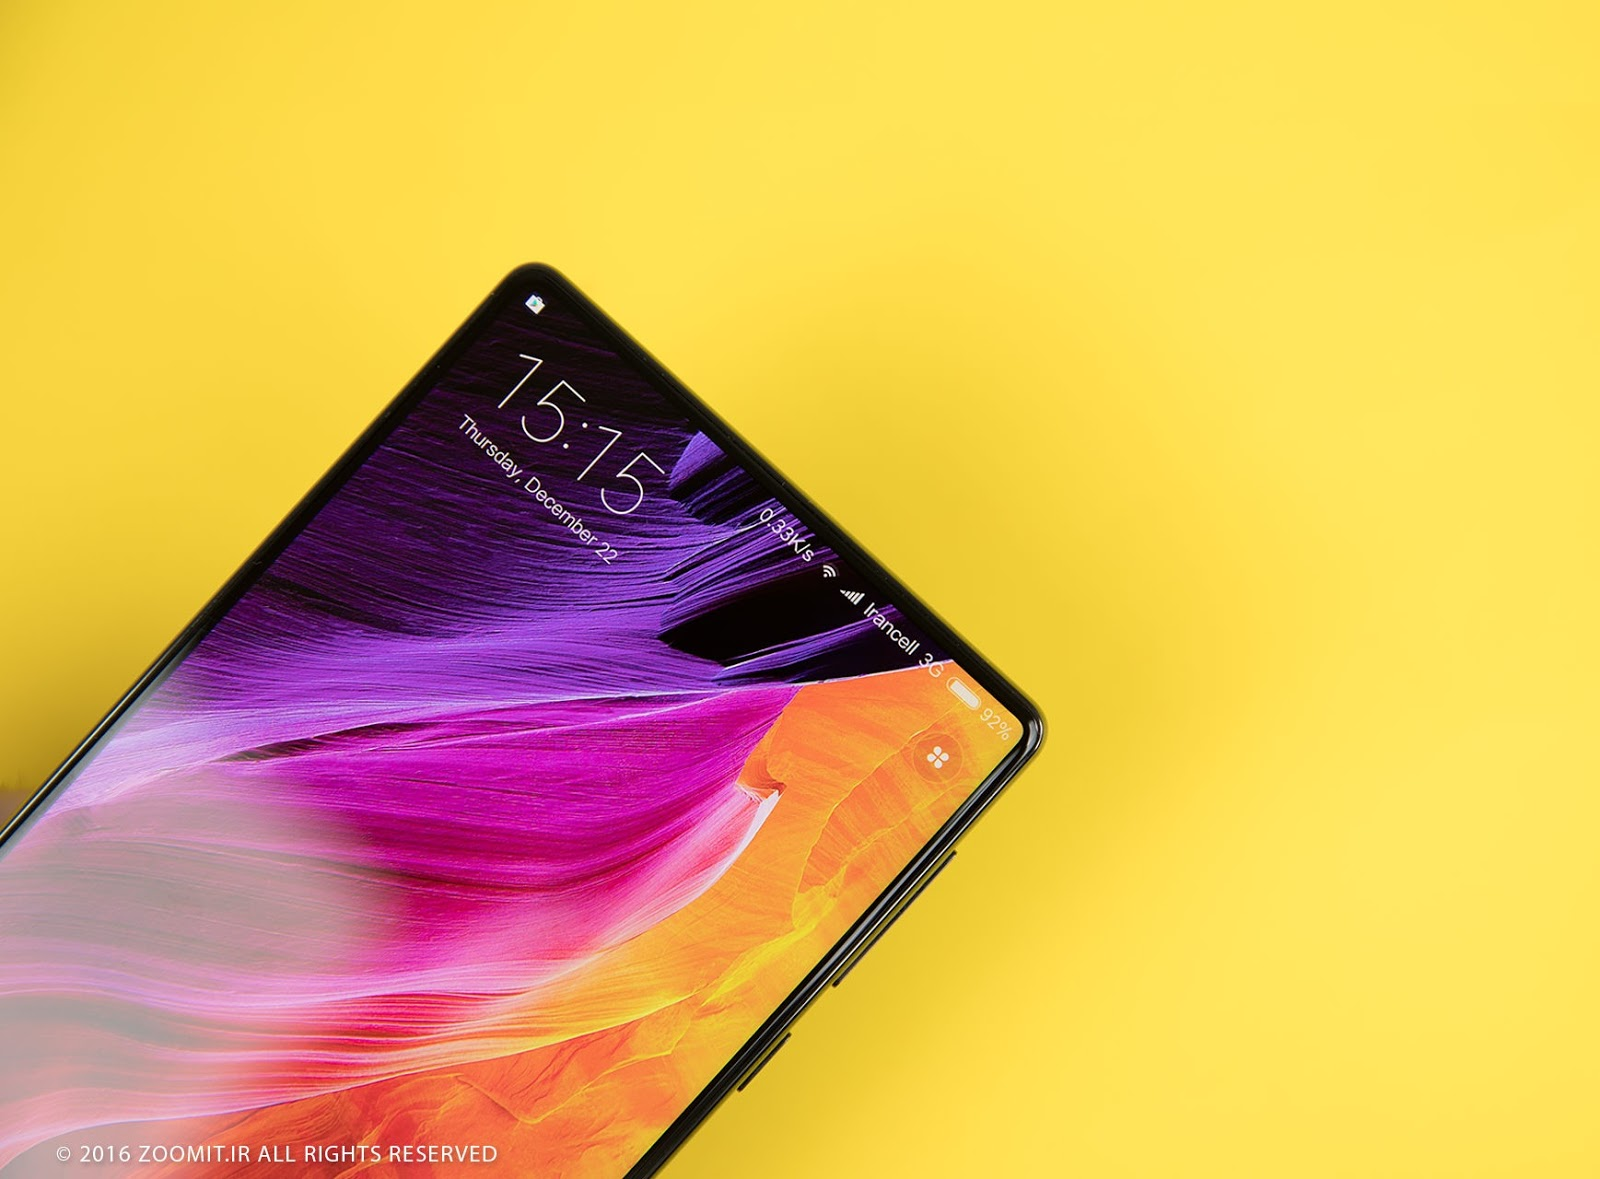 Xiaomi sales 100 million smartphones in less than a year